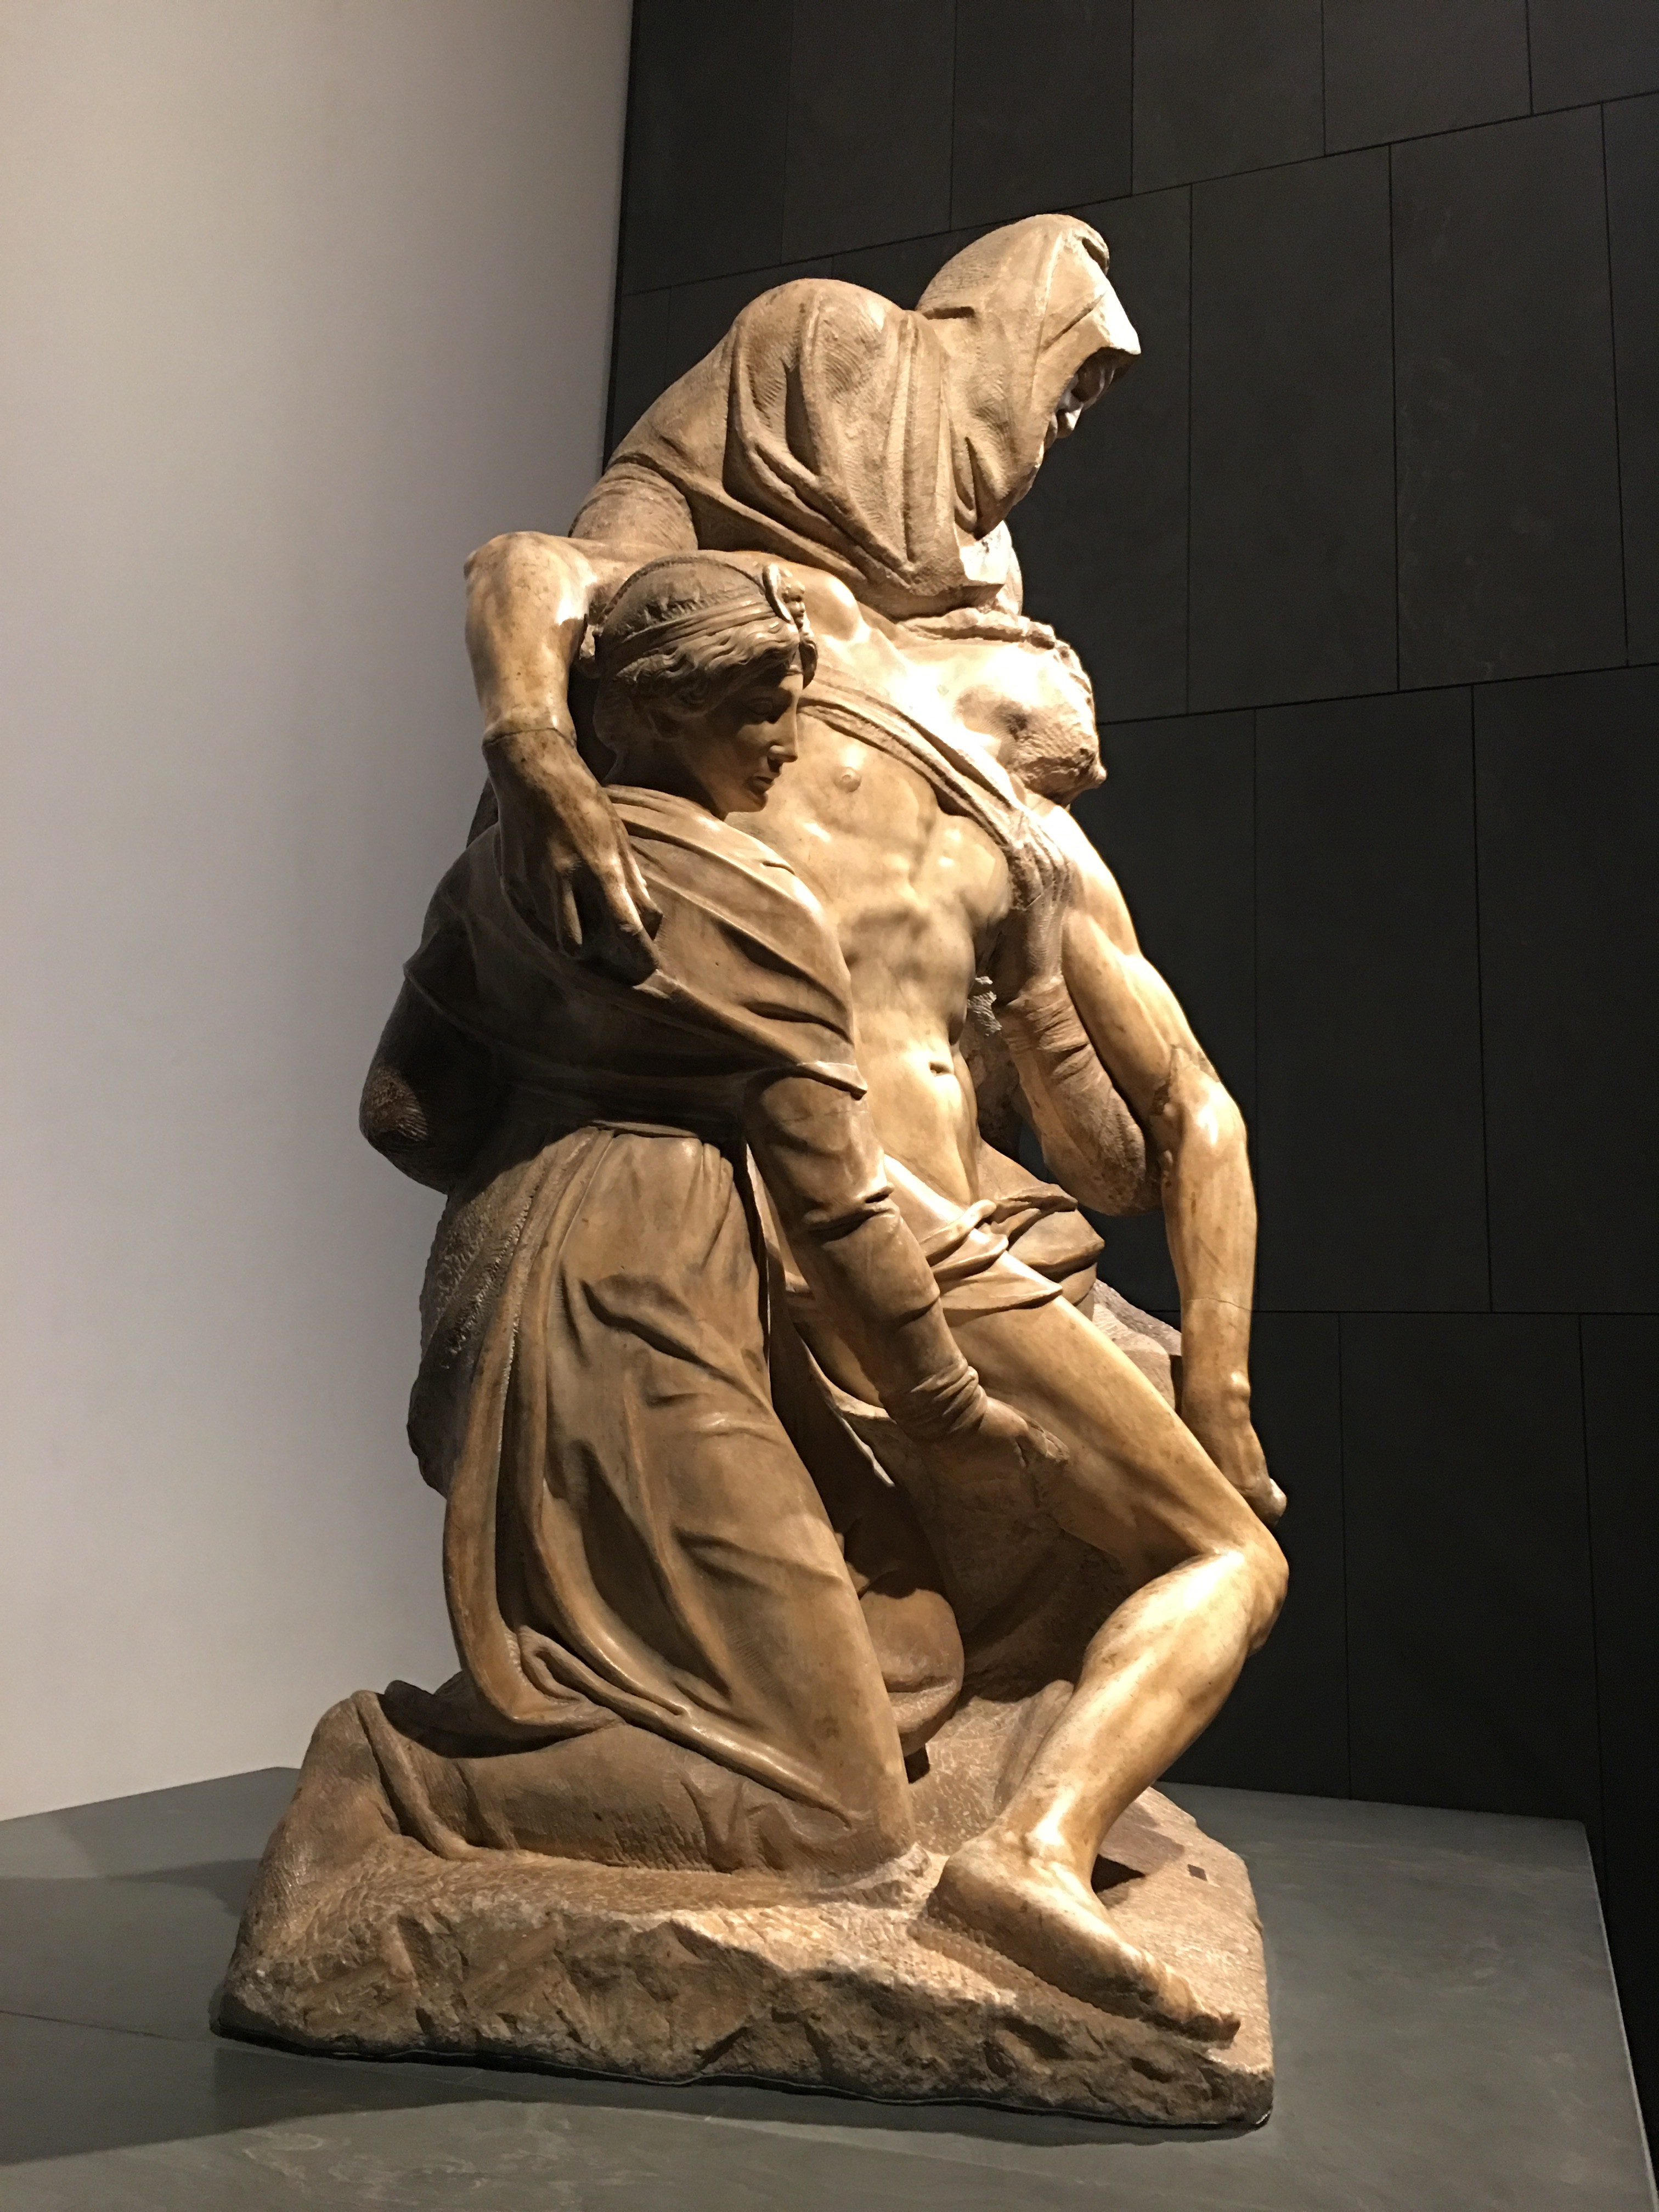 3 figures in marble; Mother Mary, Mary Magdalene and Joseph of Arimathea support Christ's limp body.